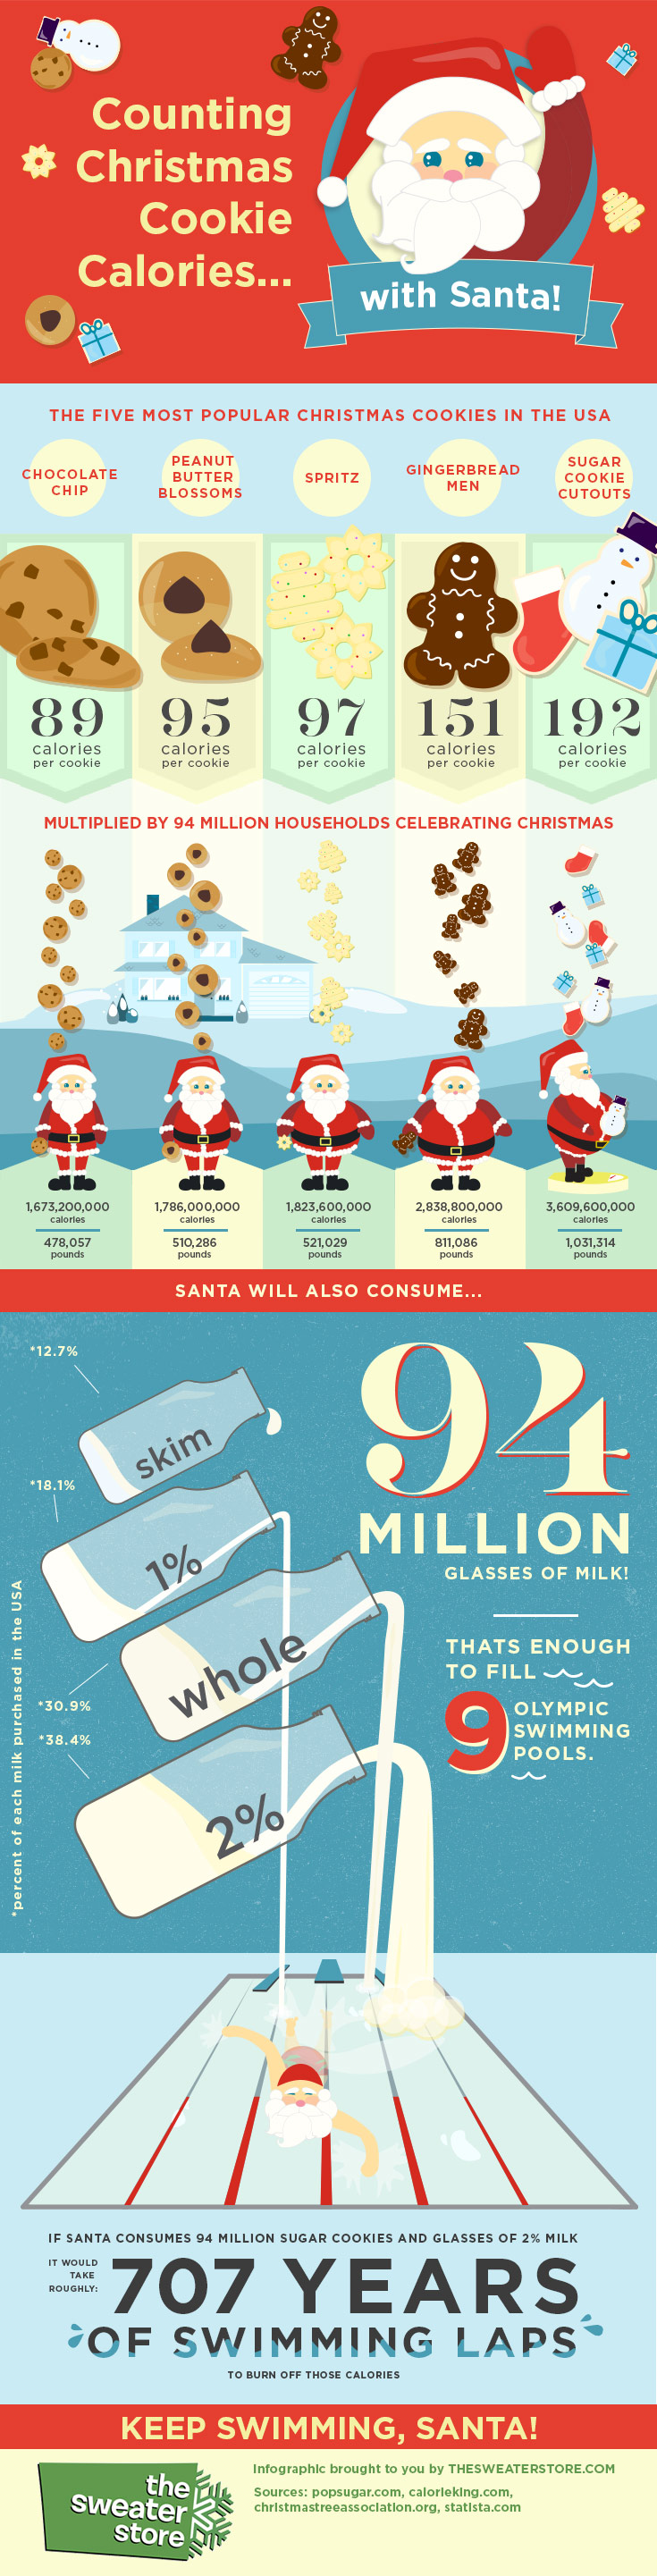 Counting Christmas Cookie Calories... With Santa!